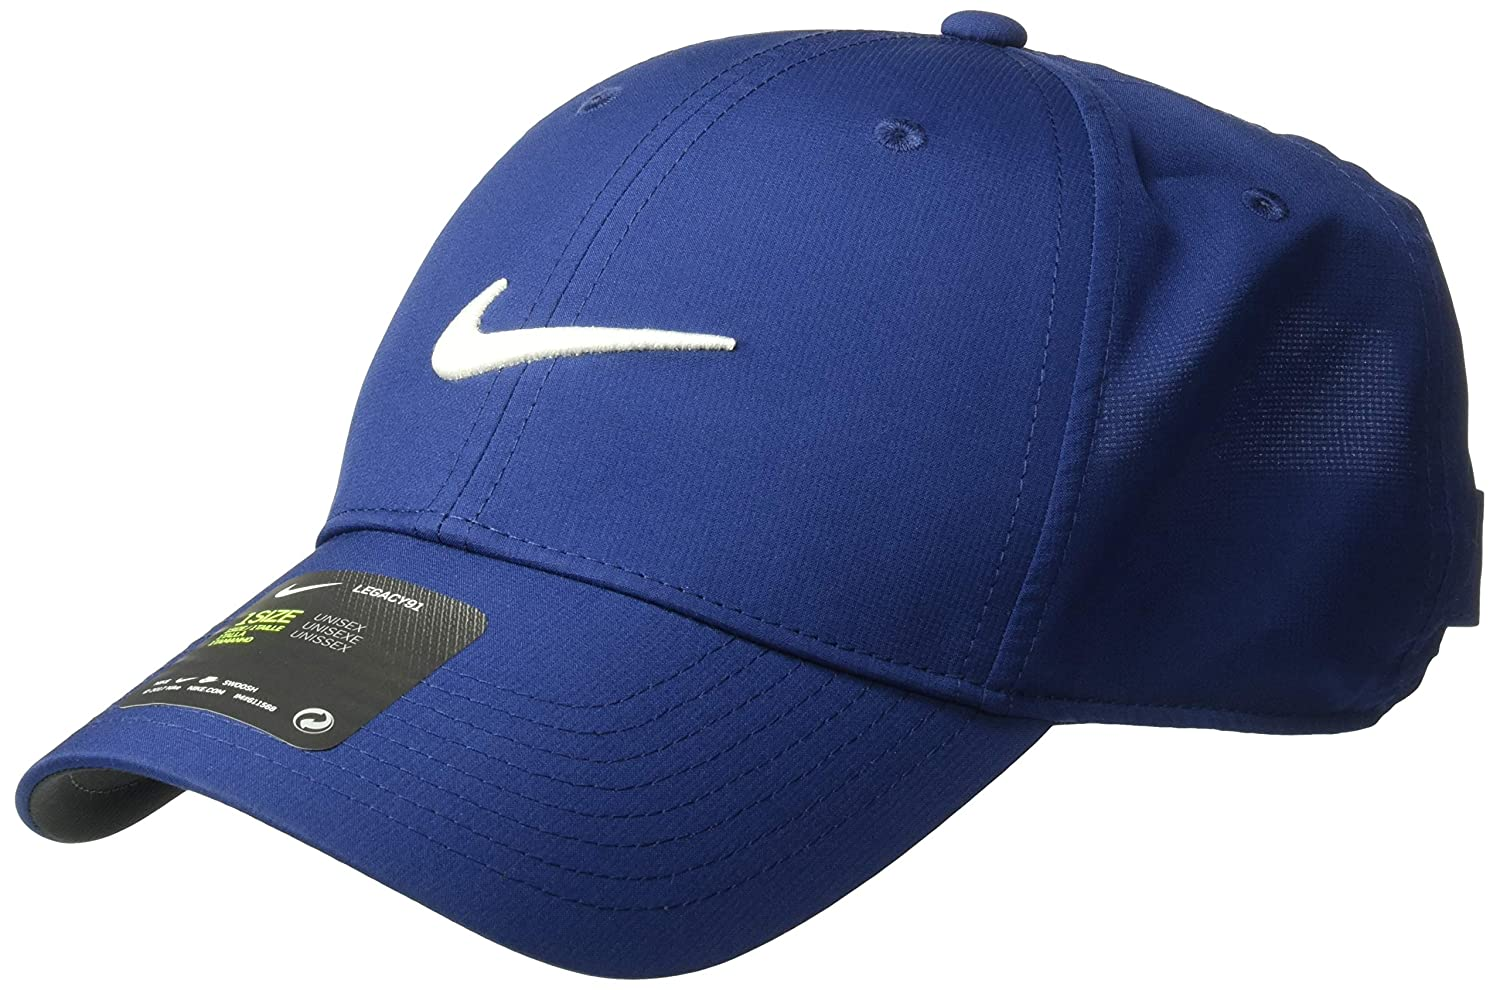 2b010734 Amazon.com: Nike Unisex Legacy Golf Cap, Adjustable & Lightweight Hat for  Men and Women, Blue Void/Anthracite/Sail: Sports & Outdoors